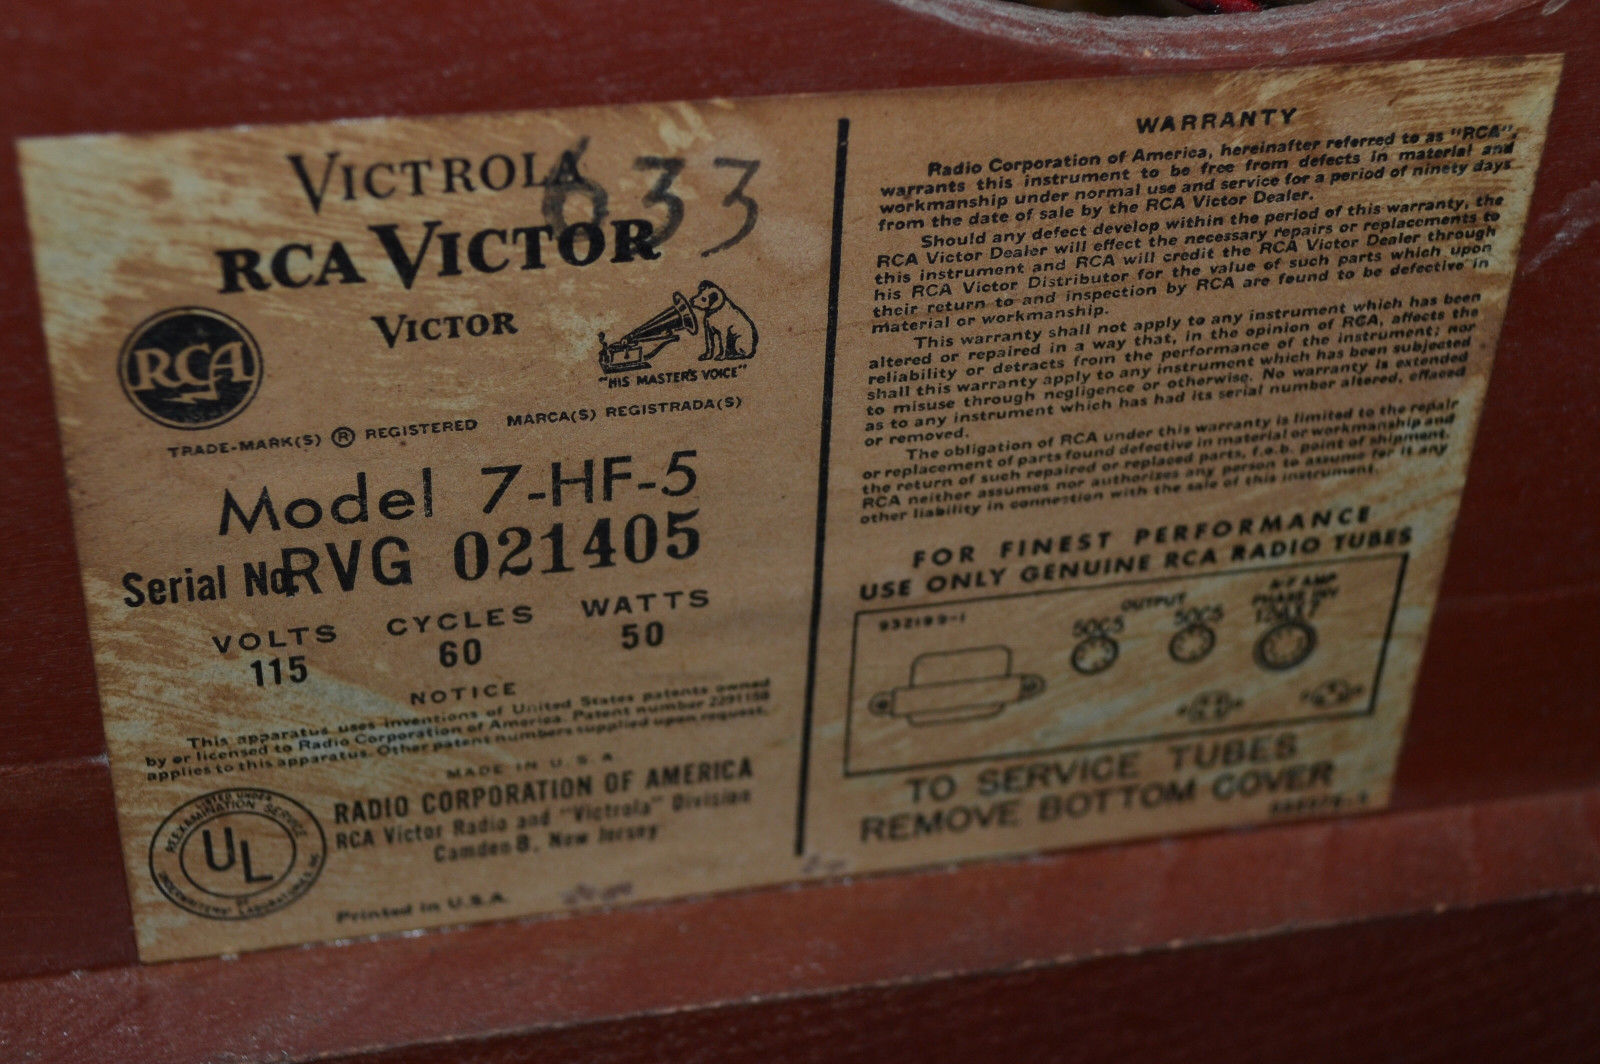 Vintage RCA Victor Victrola 7-HF-5 and 50 similar items